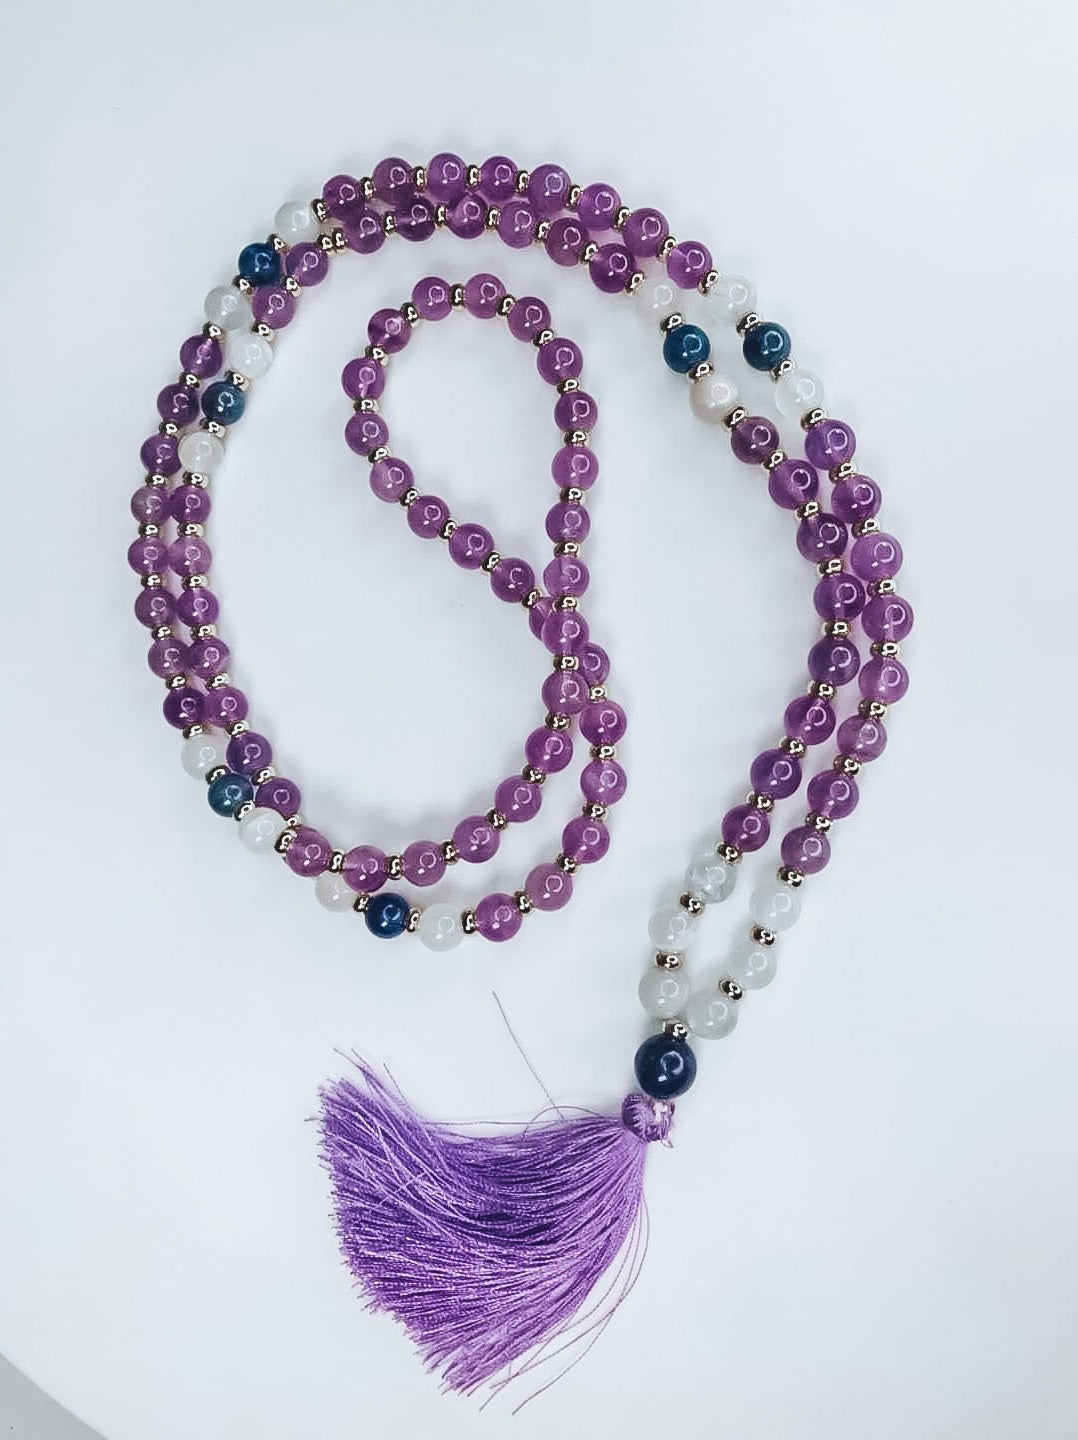 amethyst necklace, amethyst mala bead, amethyst mala necklace, third eye mala necklace, intuition mala bead, intuition mala necklace